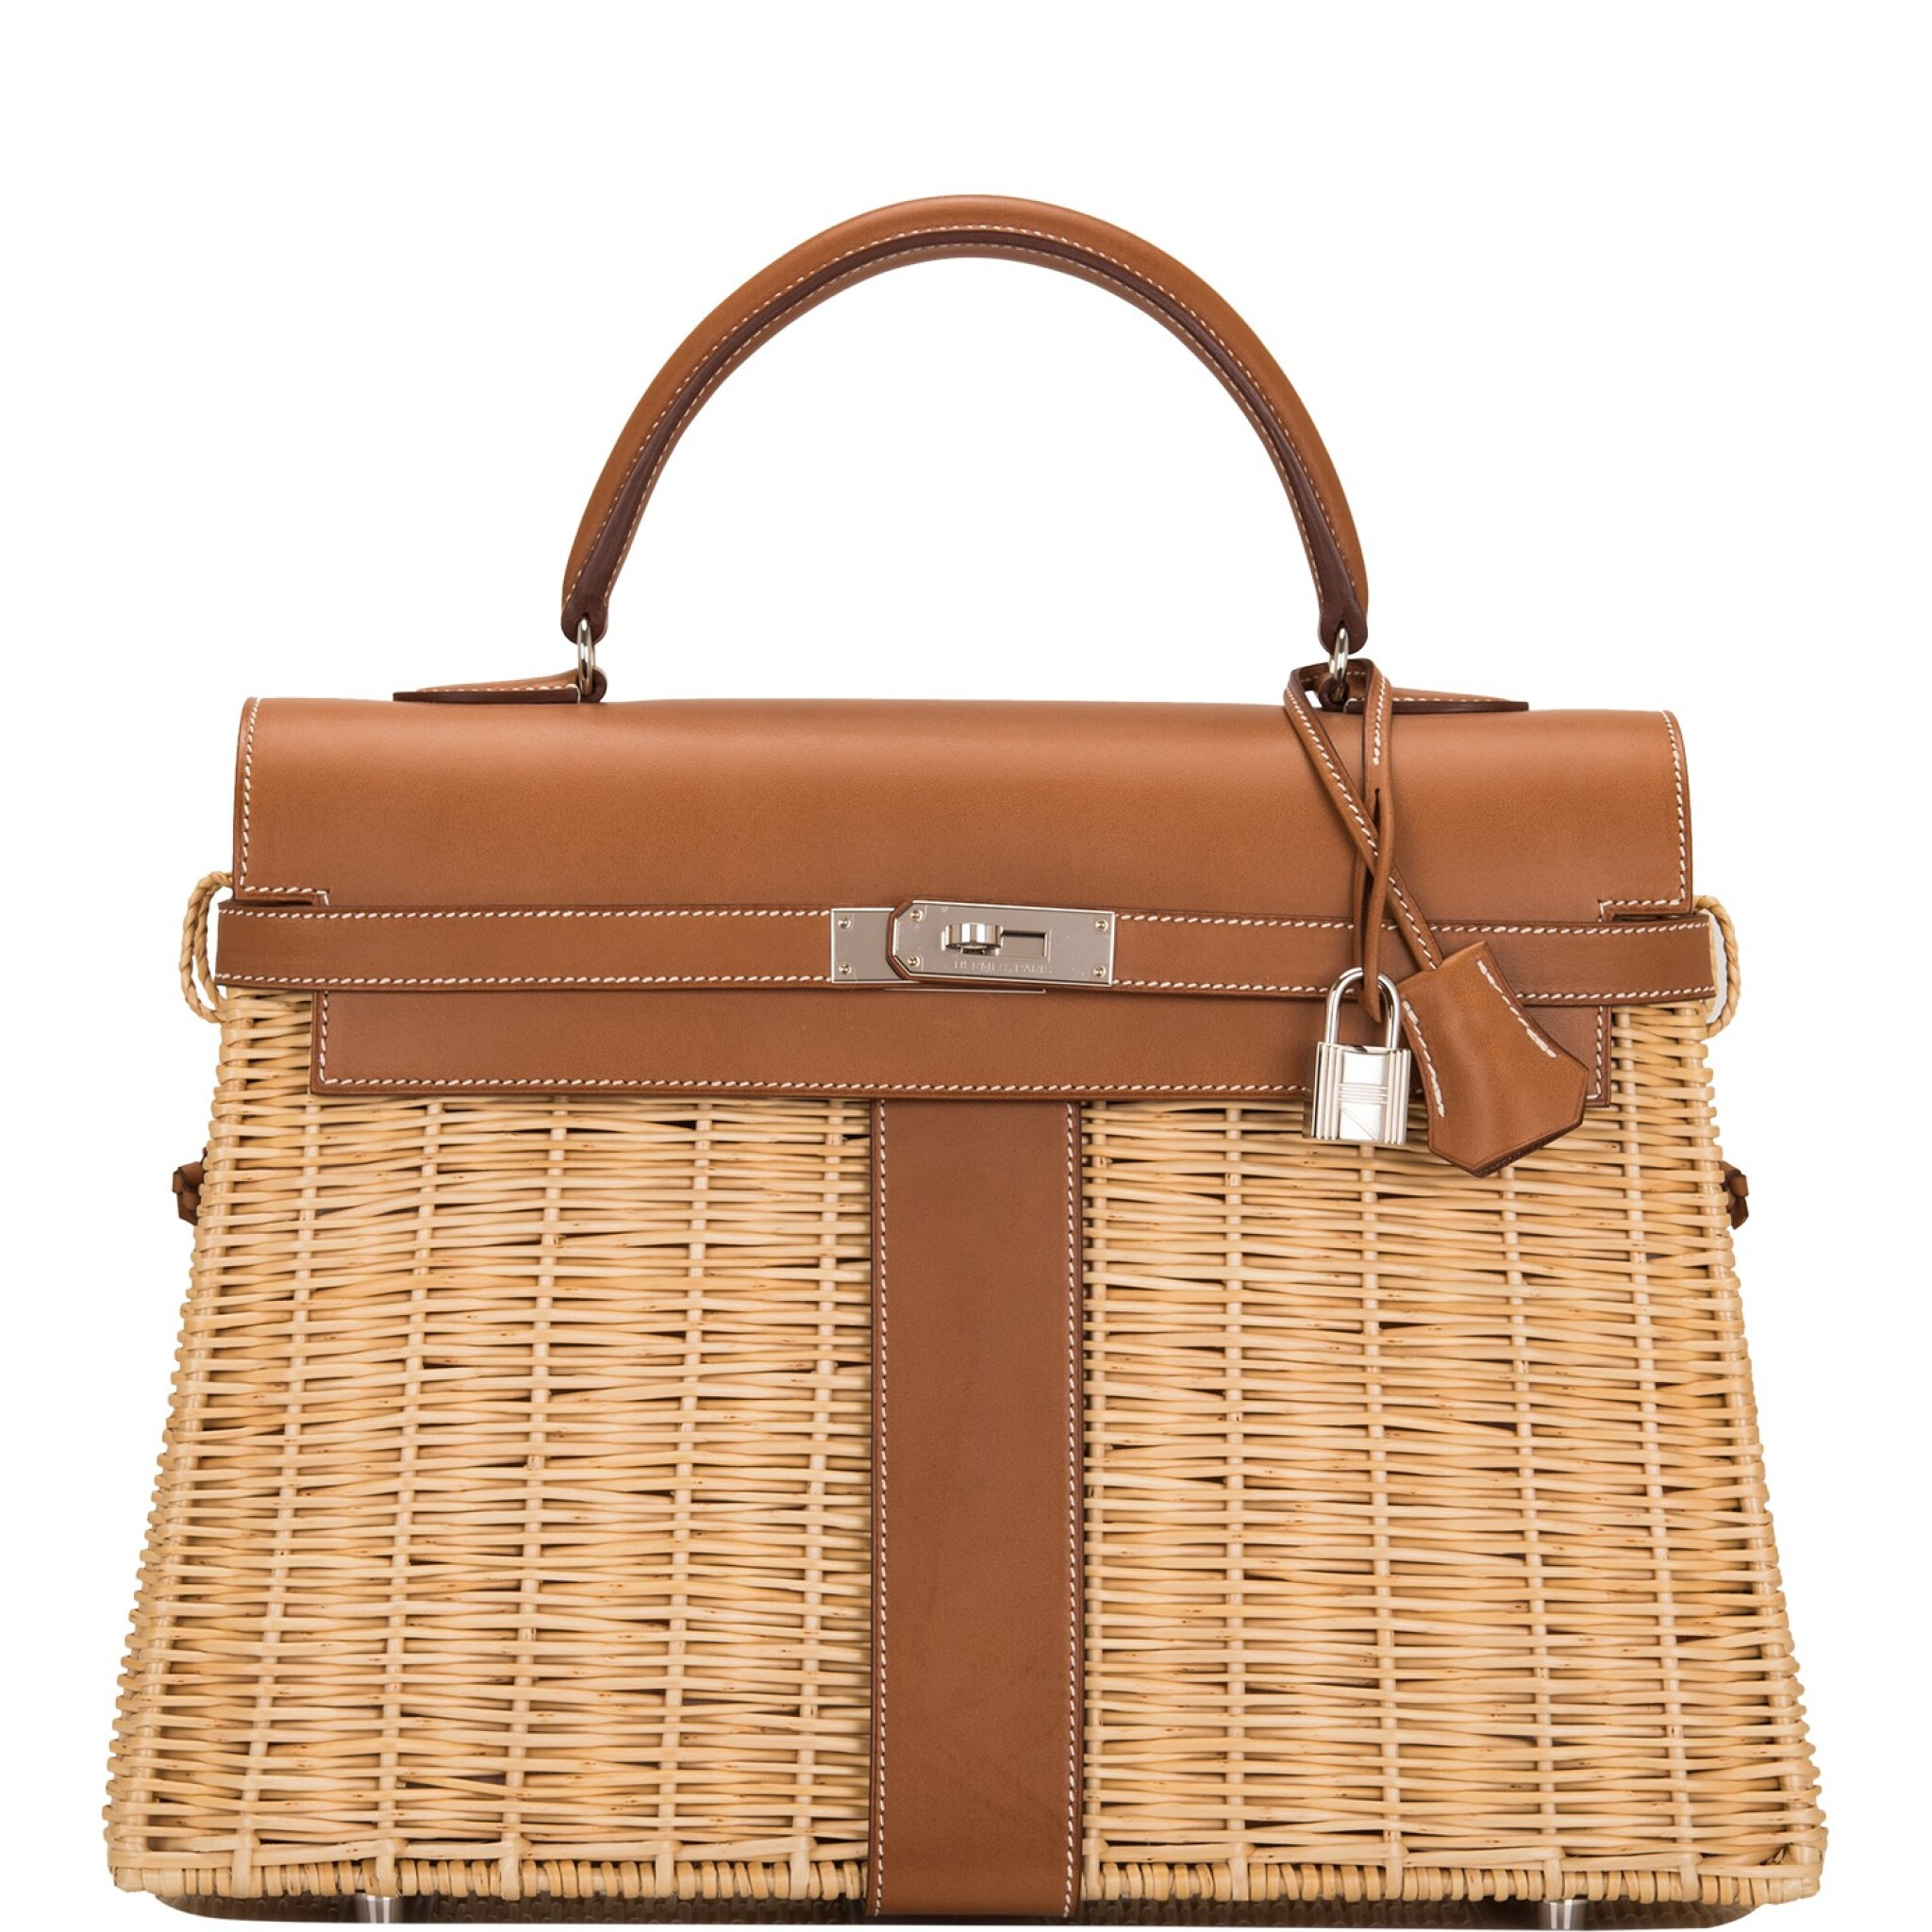 View full screen - View 1 of Lot 14. Hermès Wicker and Barenia Leather Picnic Bag Kelly 35cm Palladium Hardware.